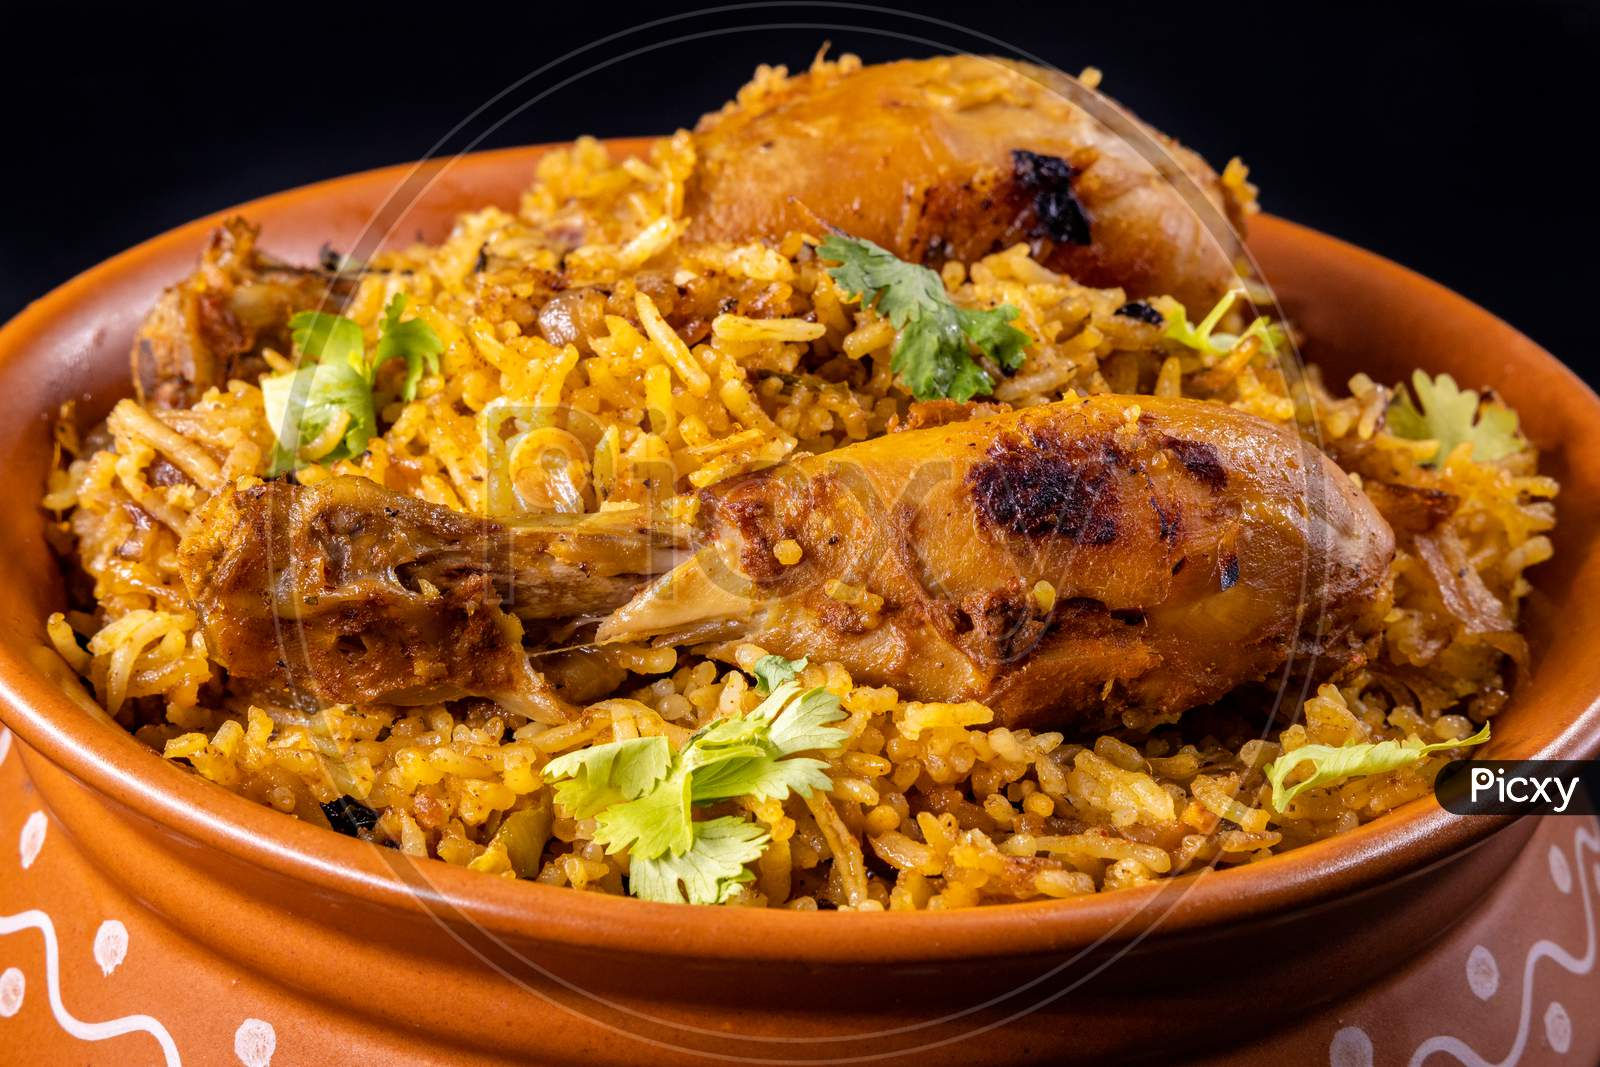 Hyderabadi Chicken Dum Biryani Beautifully Served In A Authentic Clay Bowl Over An Isolated Black Background